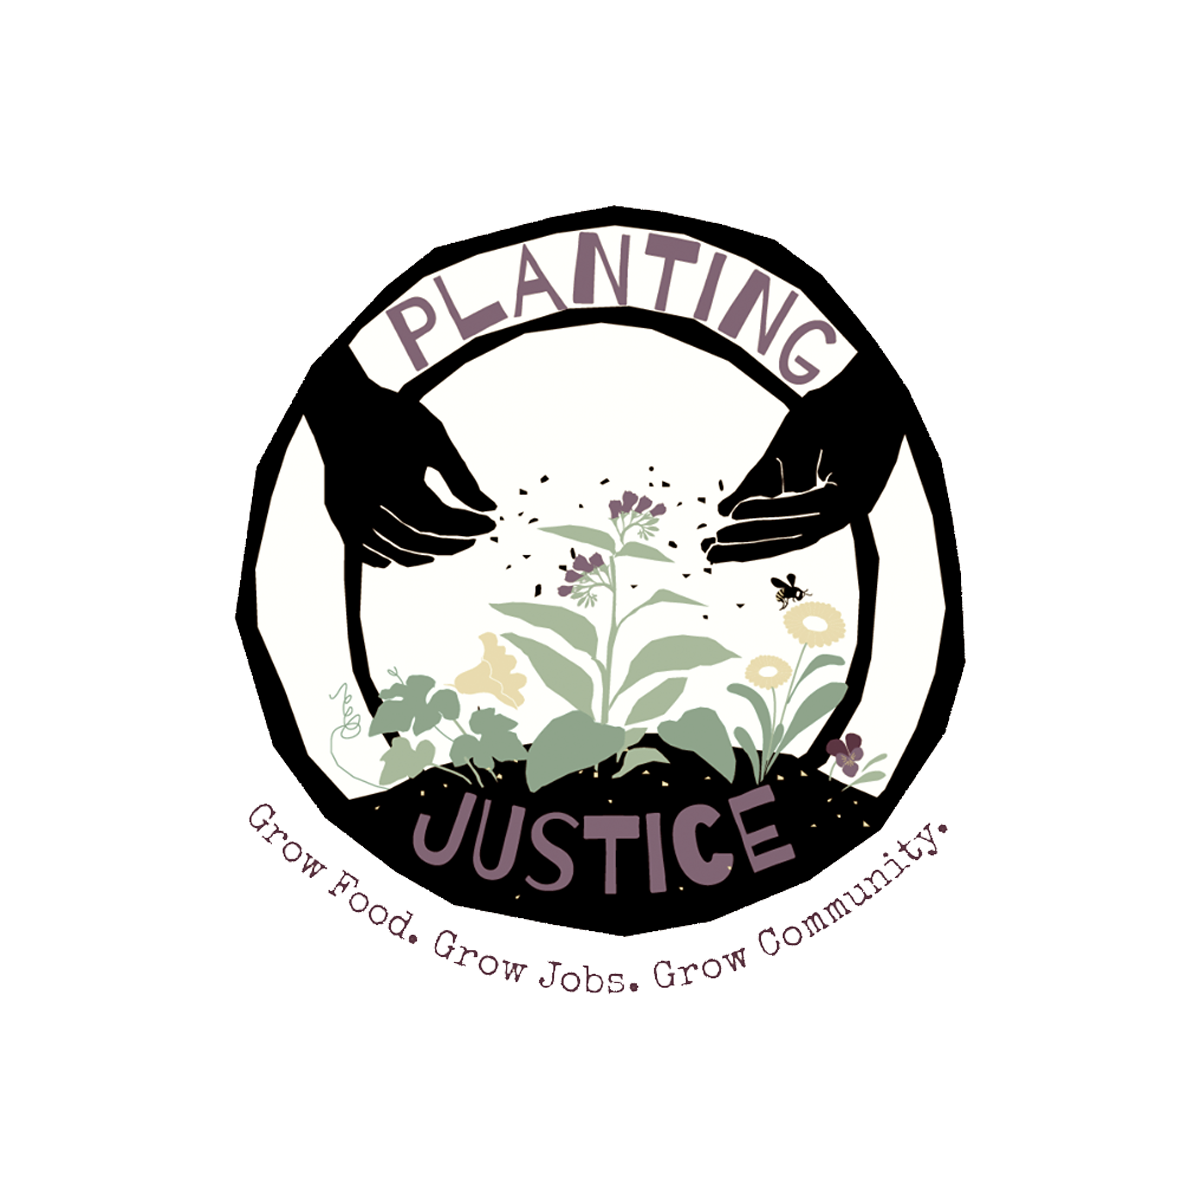 - Planting JusticeEmpowering people impacted by mass incarceration and other social inequities with skills and resources.